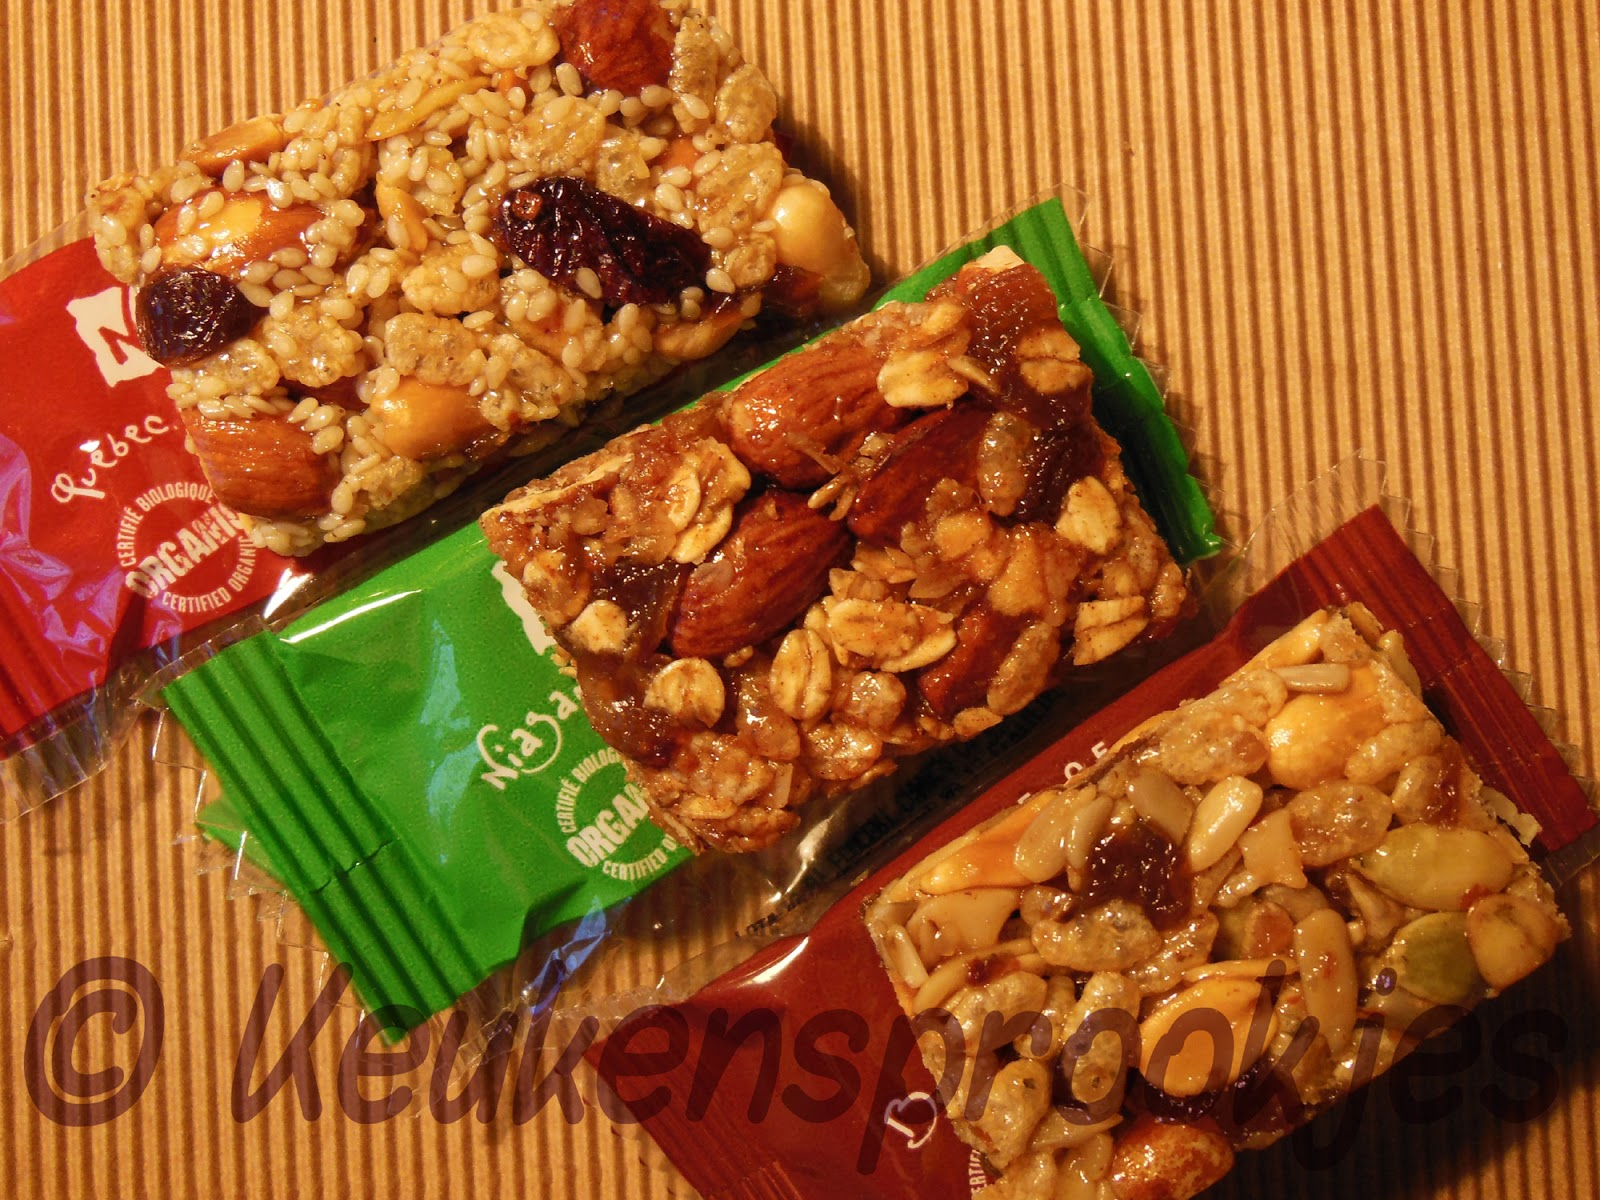 Keukensprookjes review organic food bars van taste of nature for J s food bar 01708